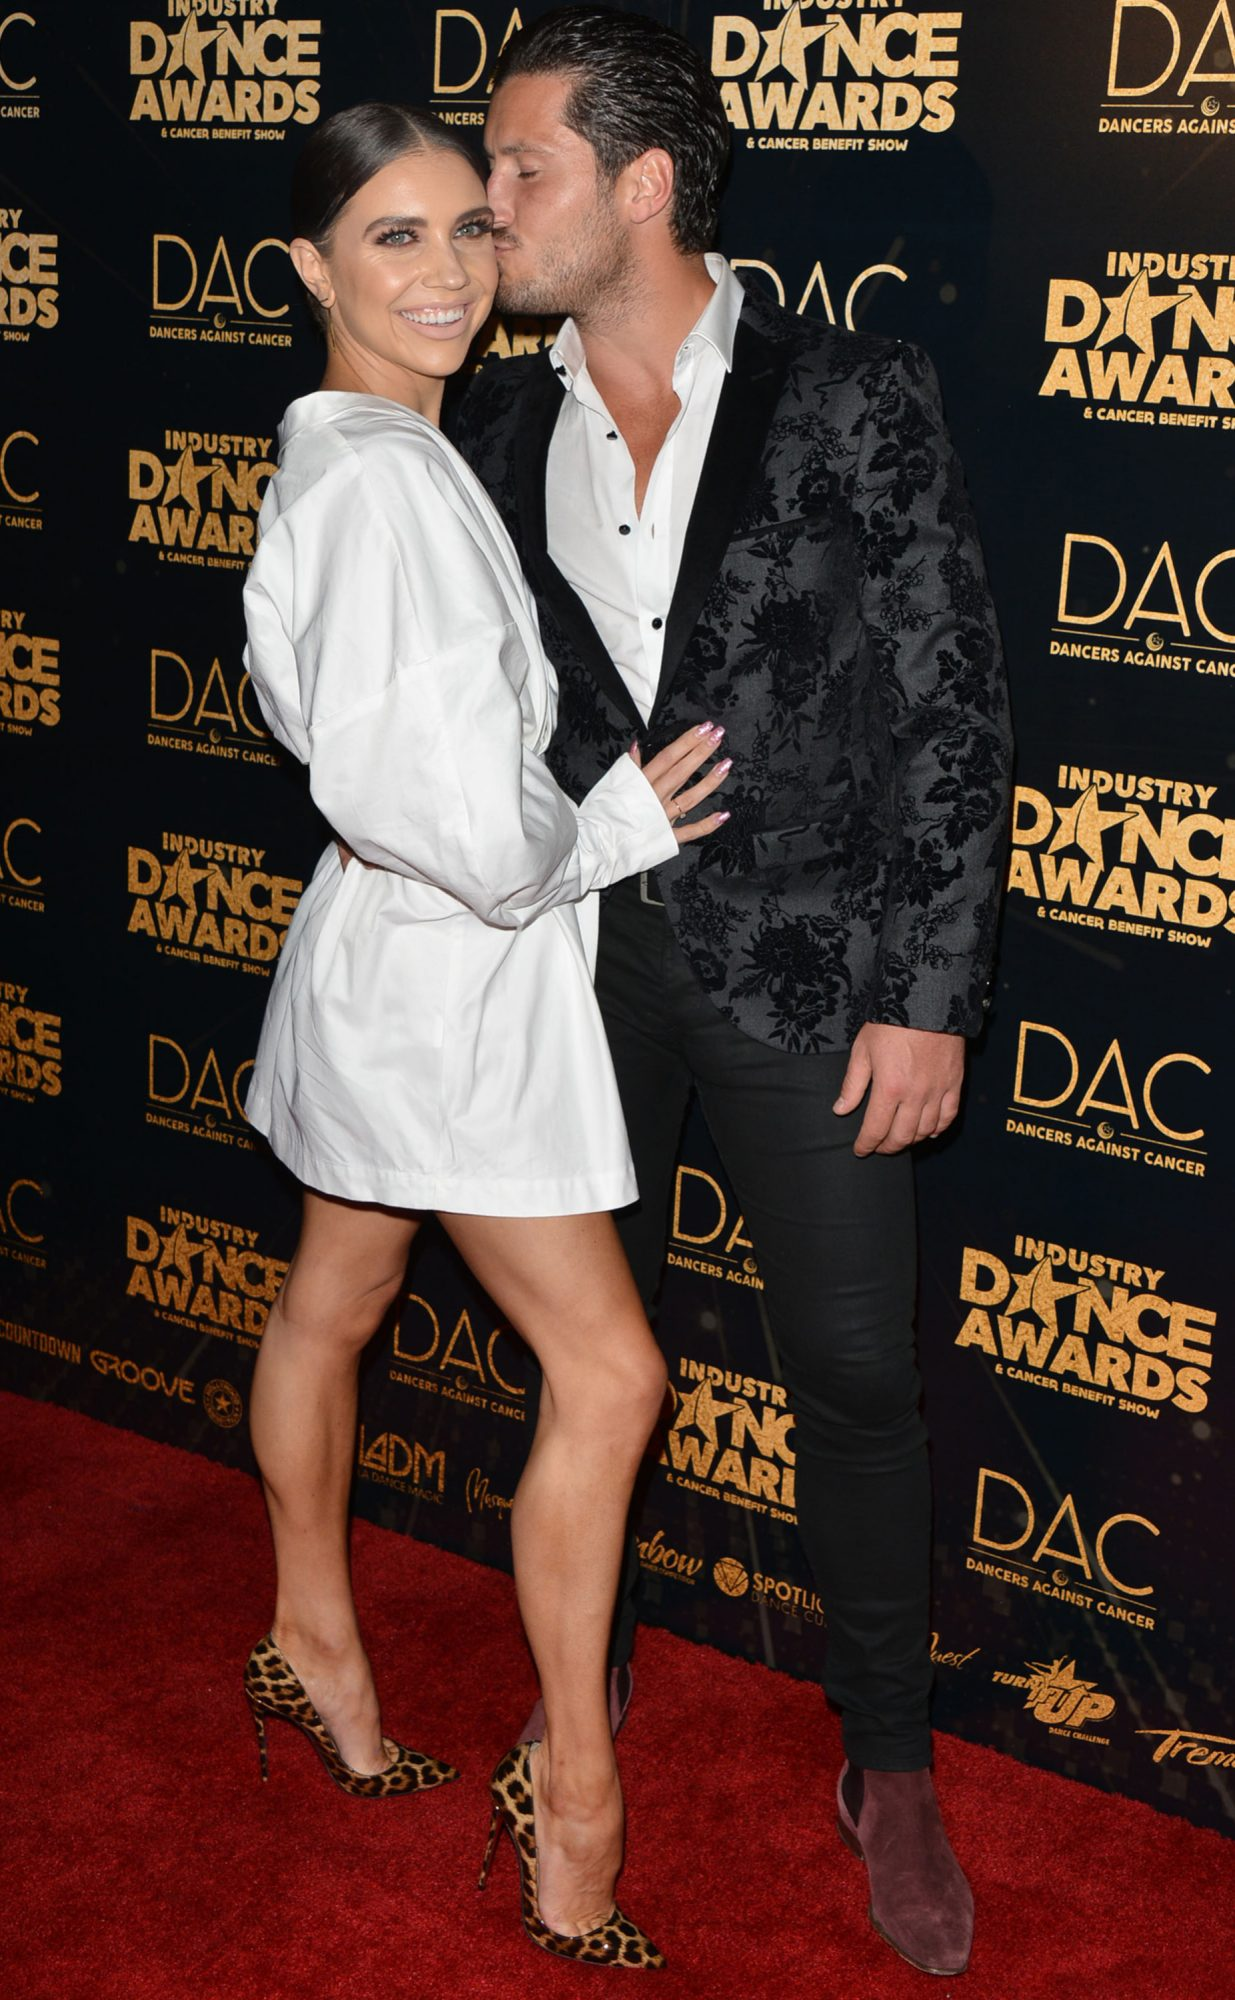 Industry Dance Awards, Los Angeles, USA - 15 Aug 2018